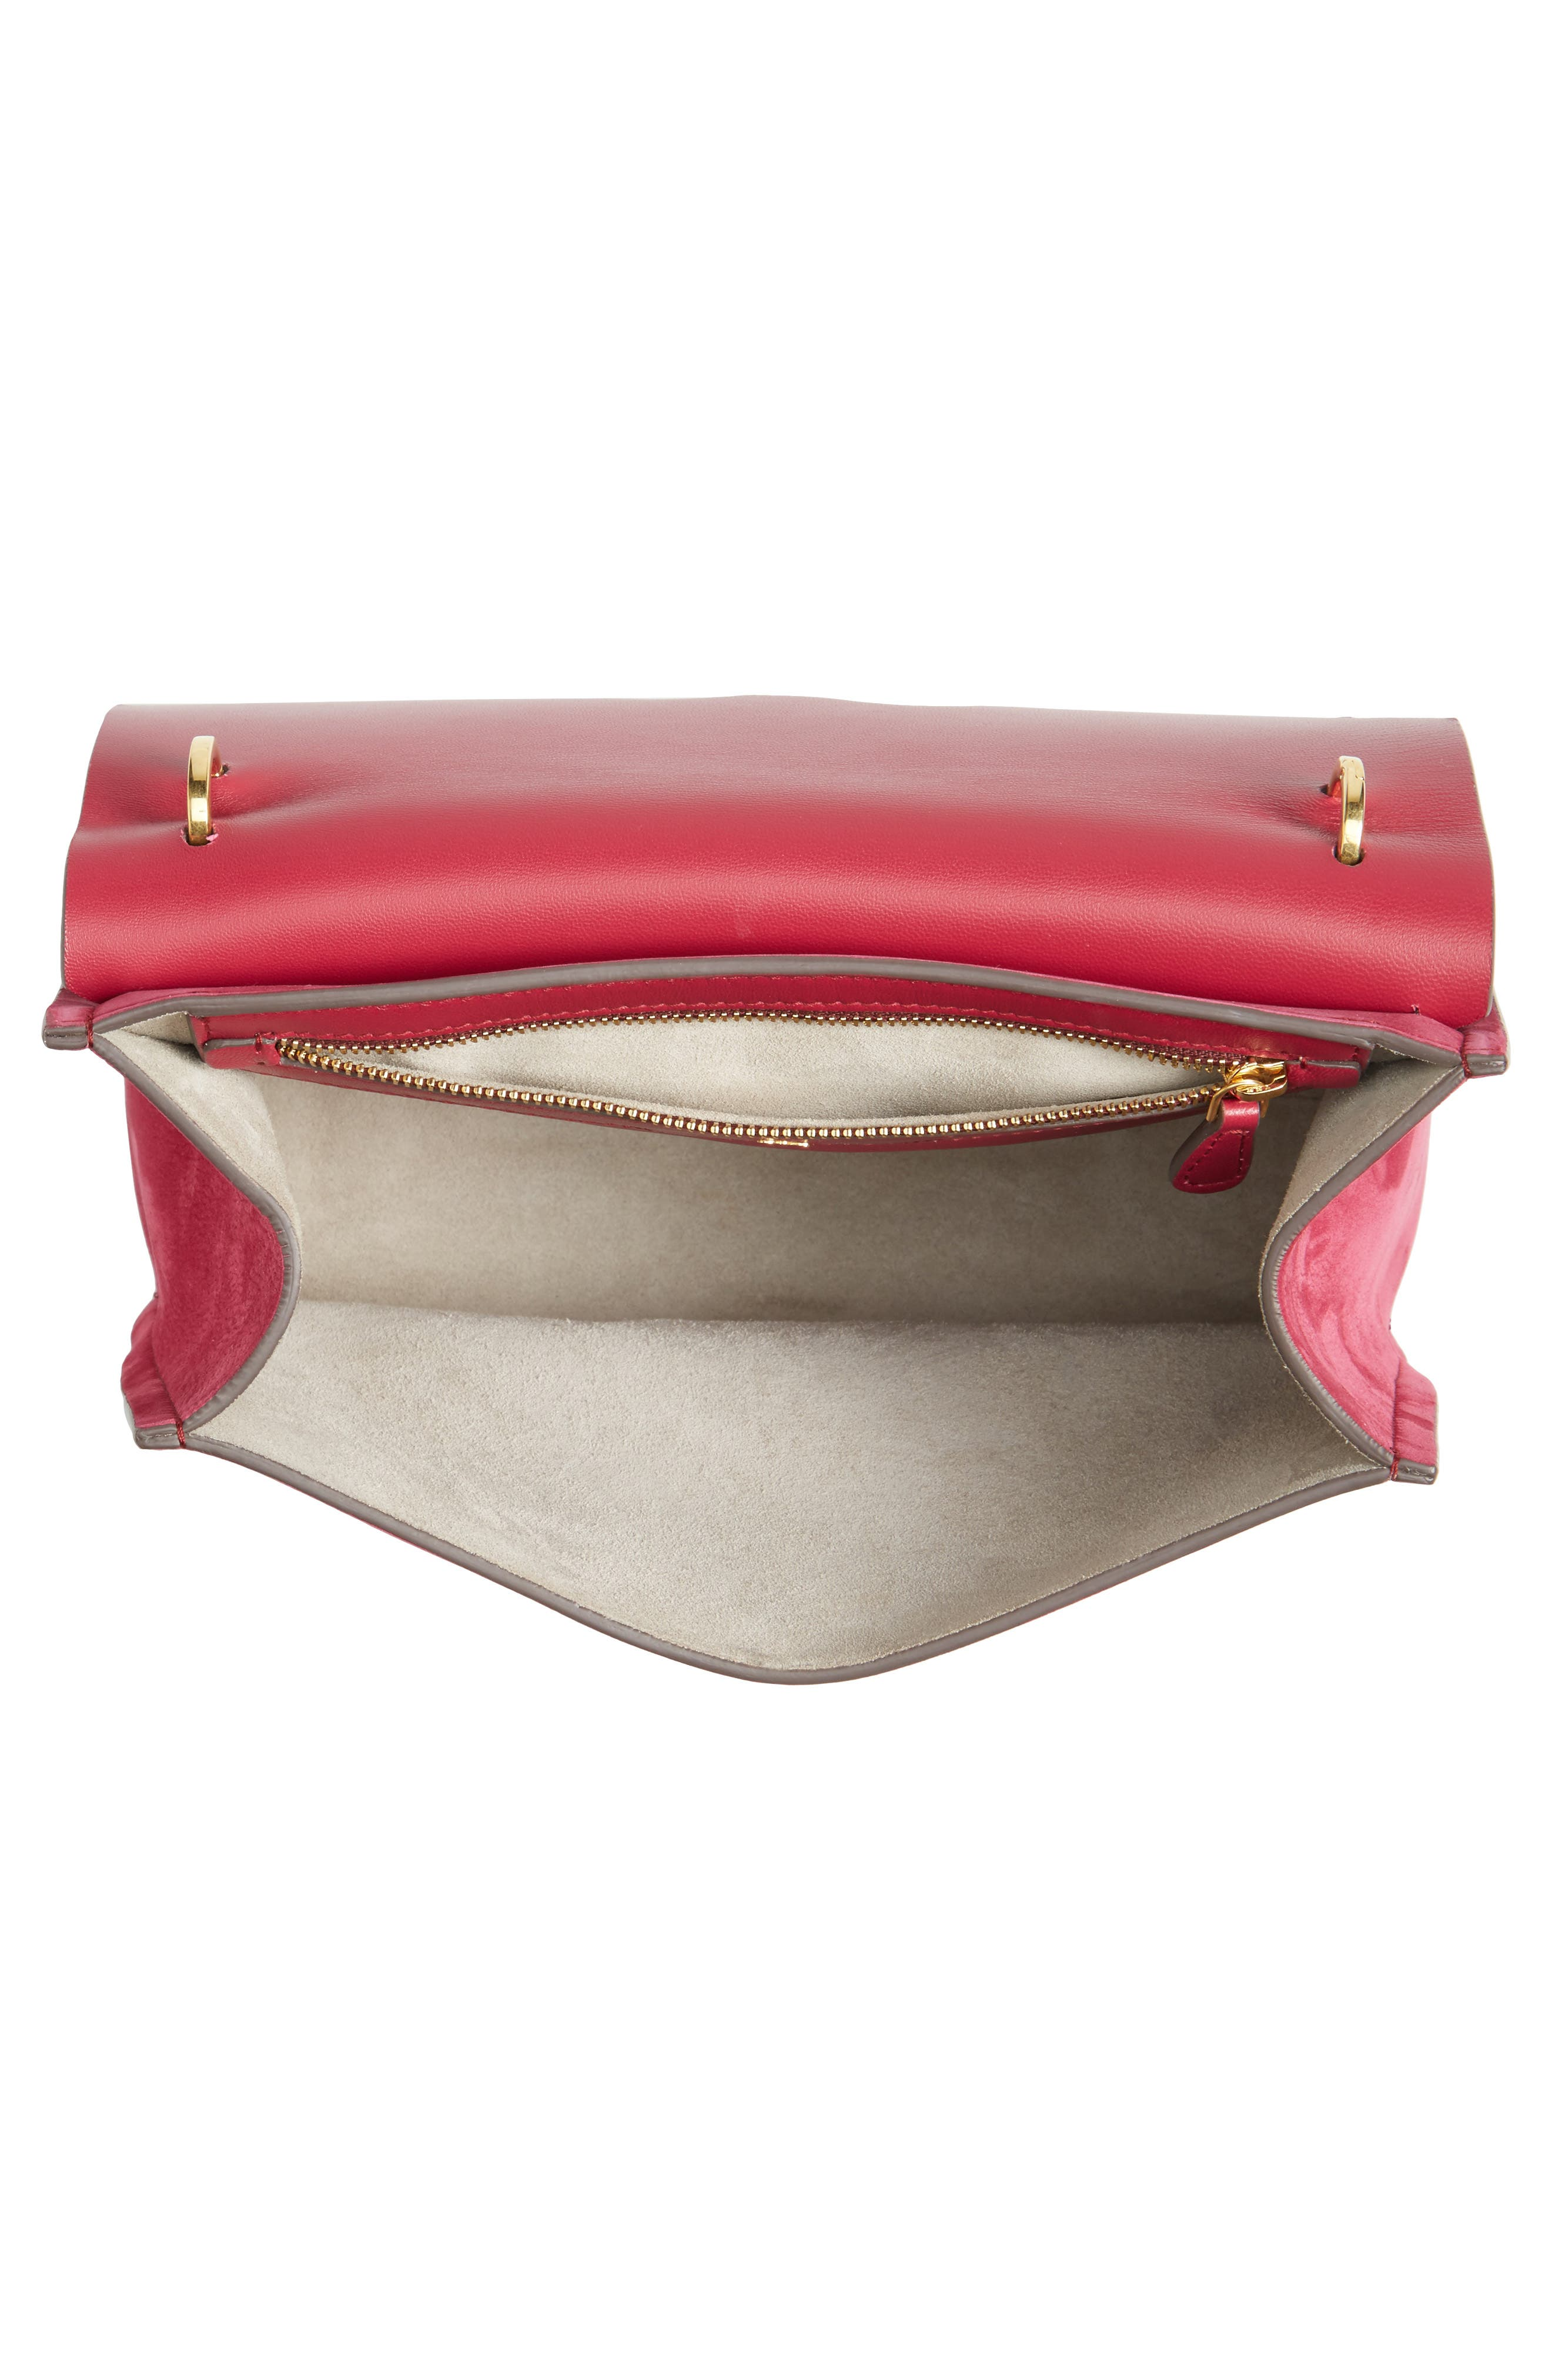 Extra Small Bathhurst Heart Leather Shoulder Bag,                             Alternate thumbnail 4, color,                             650